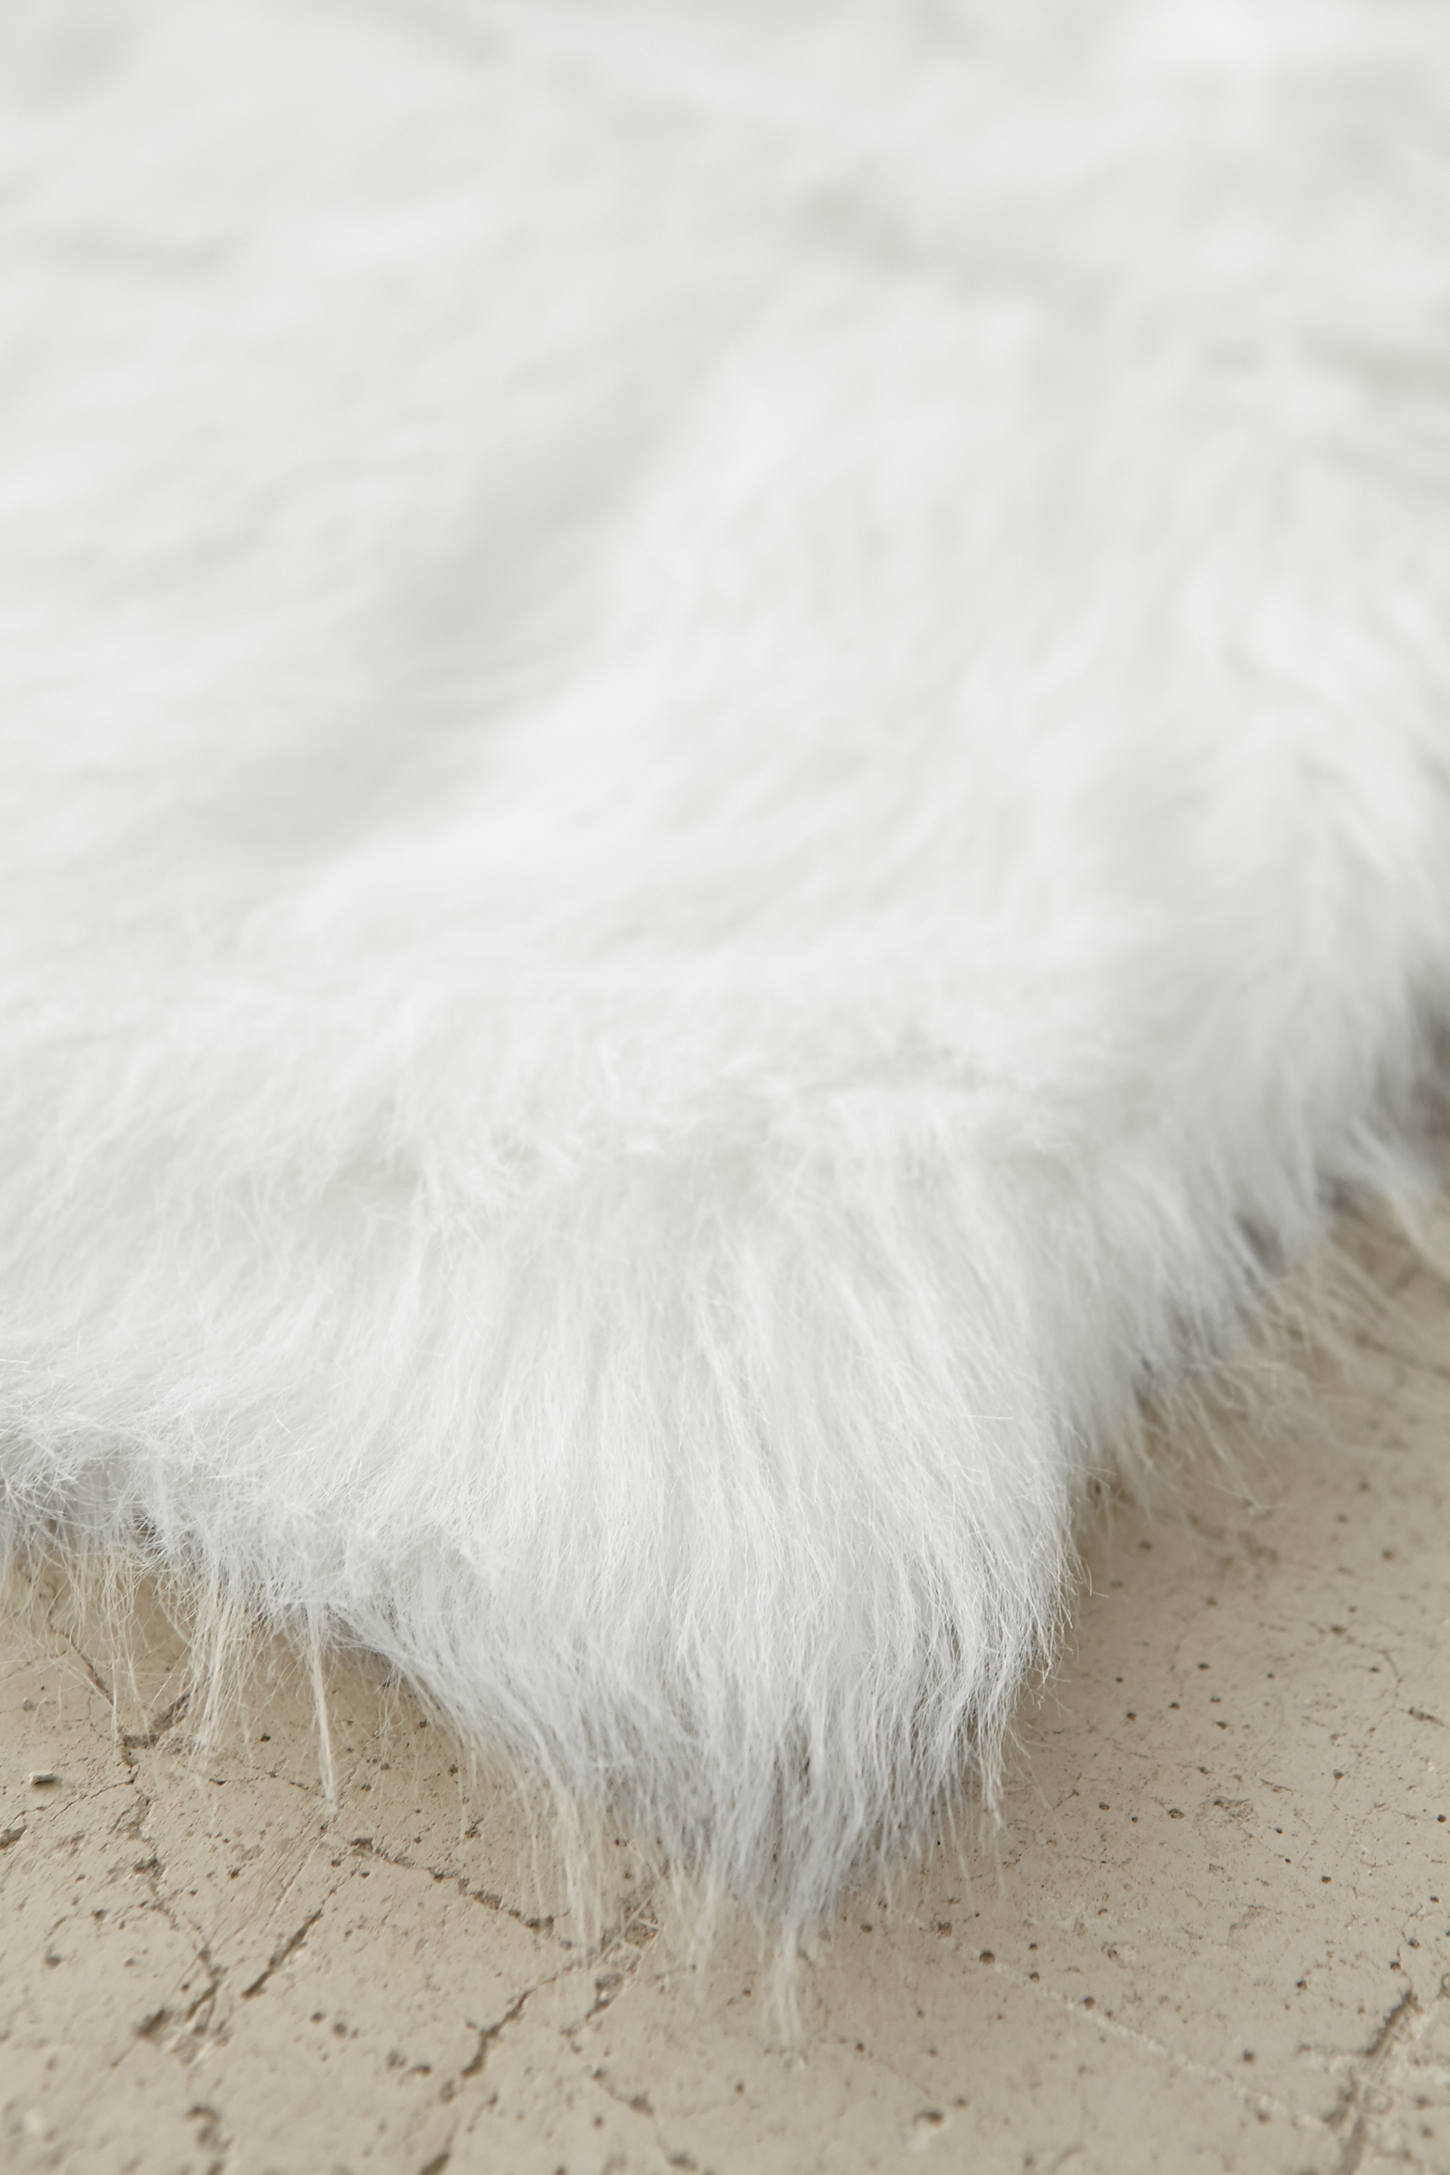 Slide View: 4: Faux Sheep Skin Rug